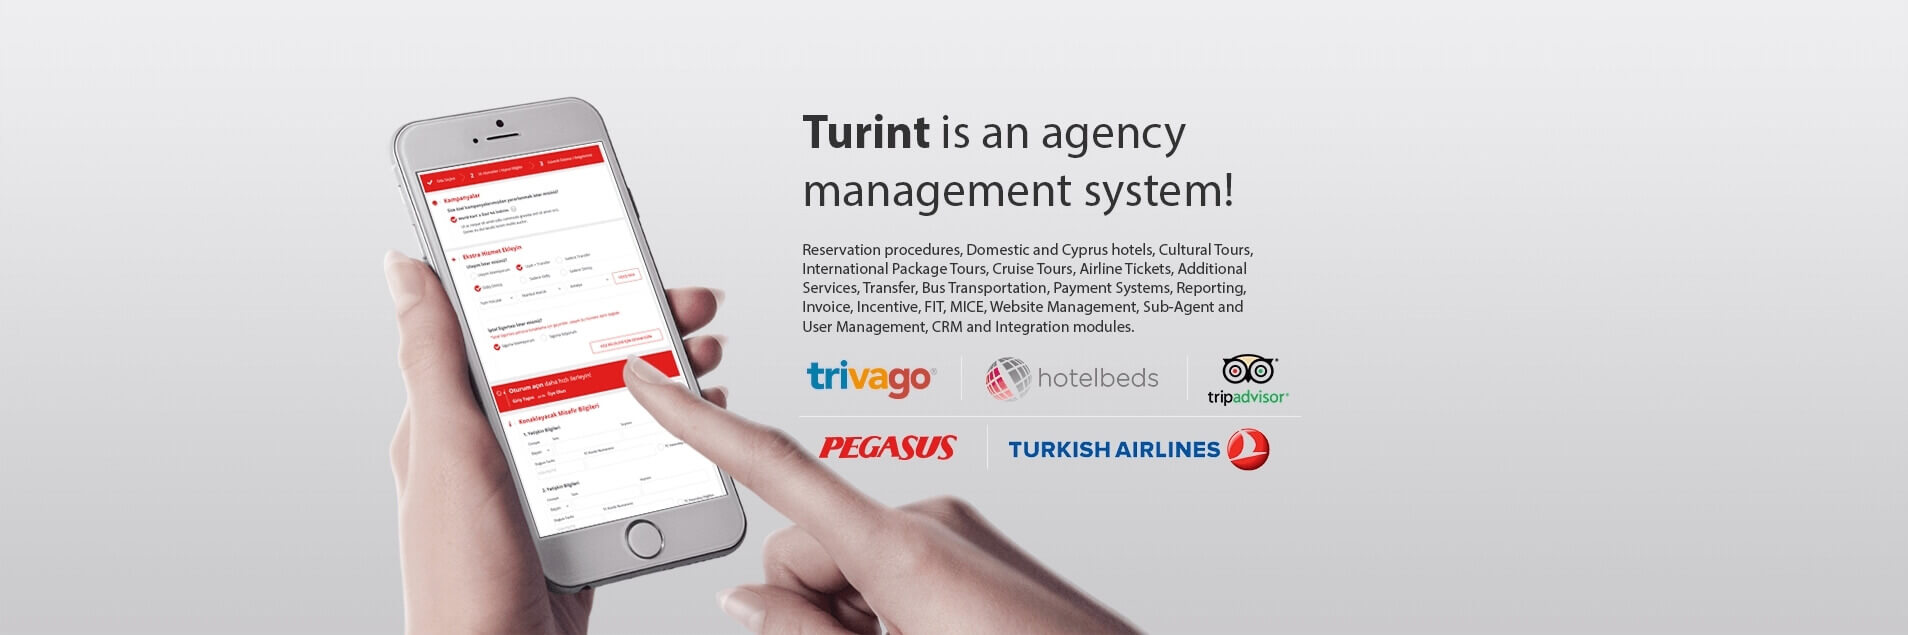 Turint is an agency management system